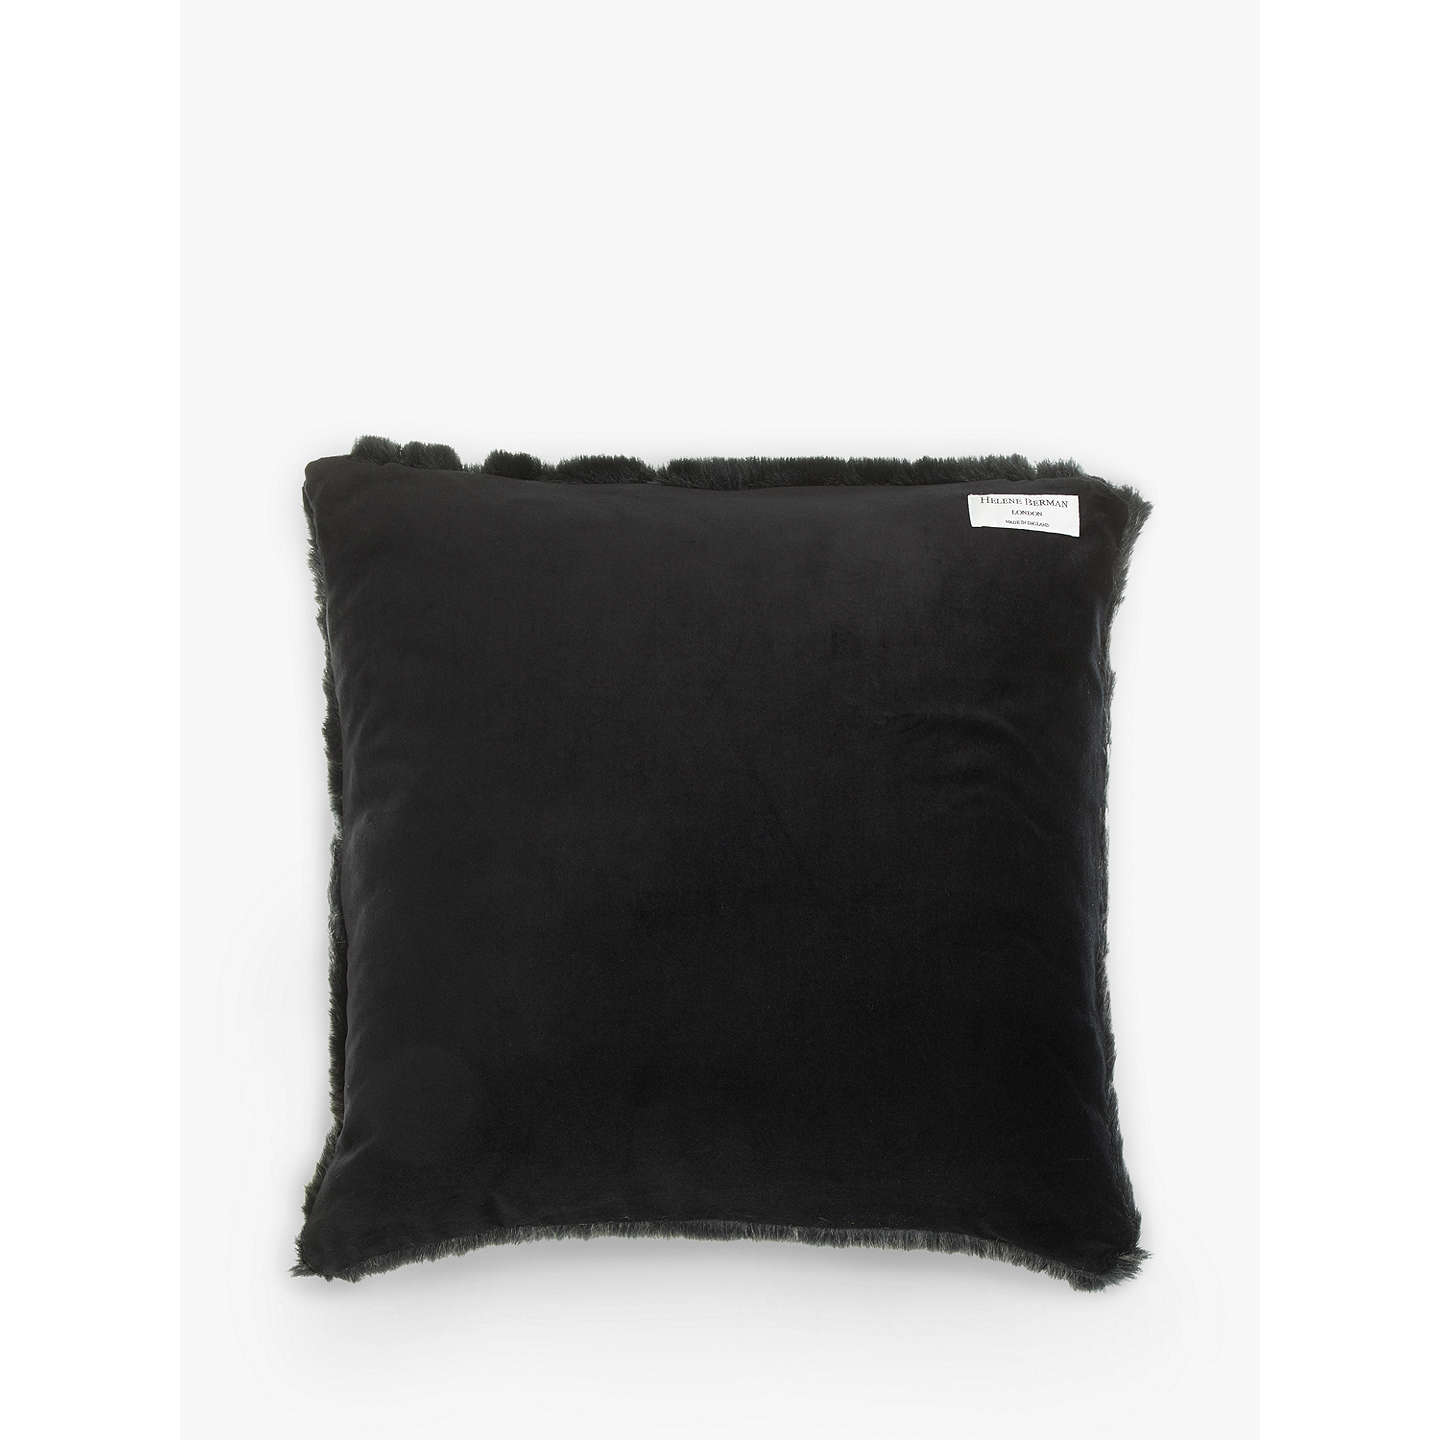 BuyHelene Berman Faux Fur Cushion, Steely Frost Online at johnlewis.com